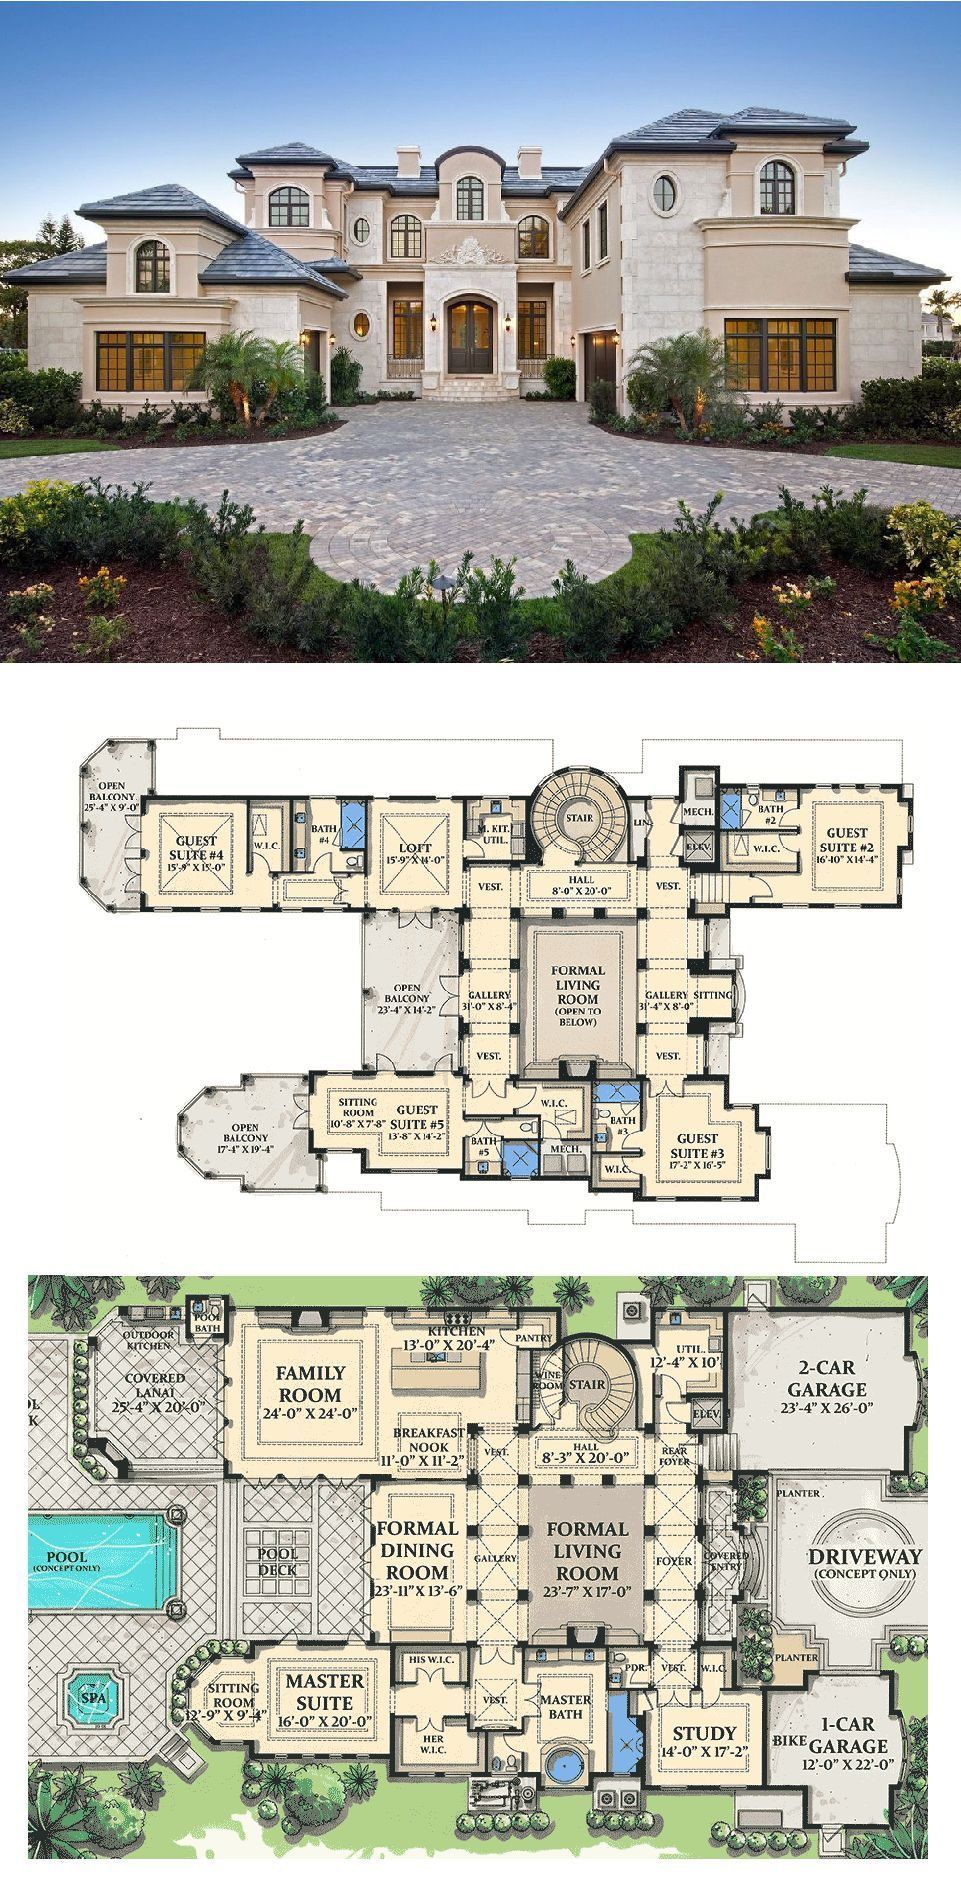 Luxury Home Plans 2020.Plan 31804dn World Class In 2019 House Plans House Plans